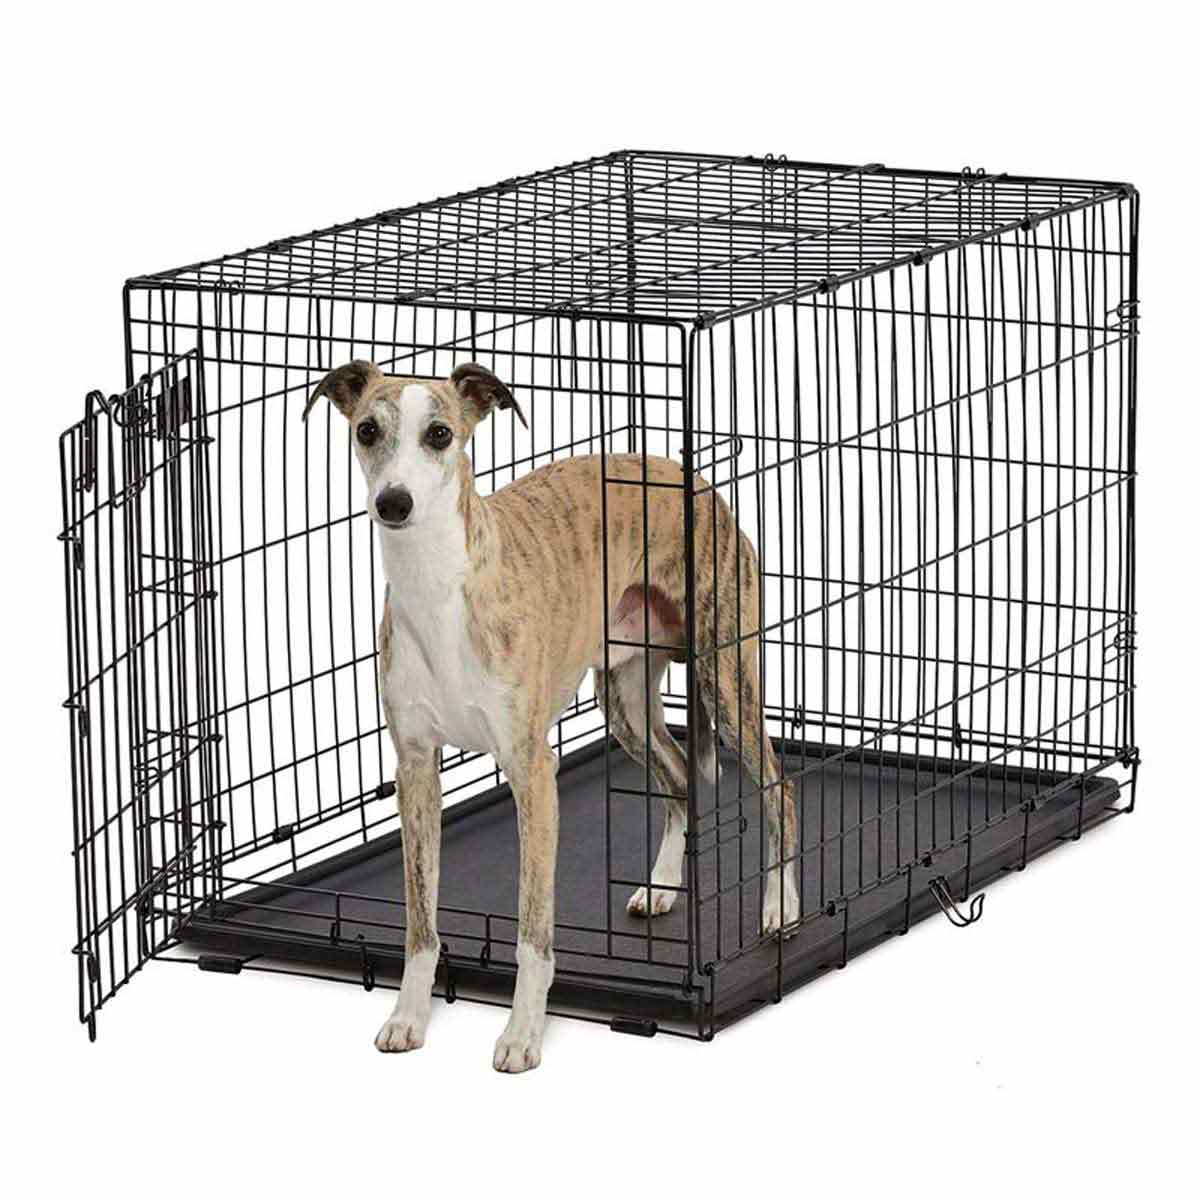 Life Stage A.C.E. Single Door Kennel for Dogs - 36.5 inches by 22.75 inches by 24.75 inches